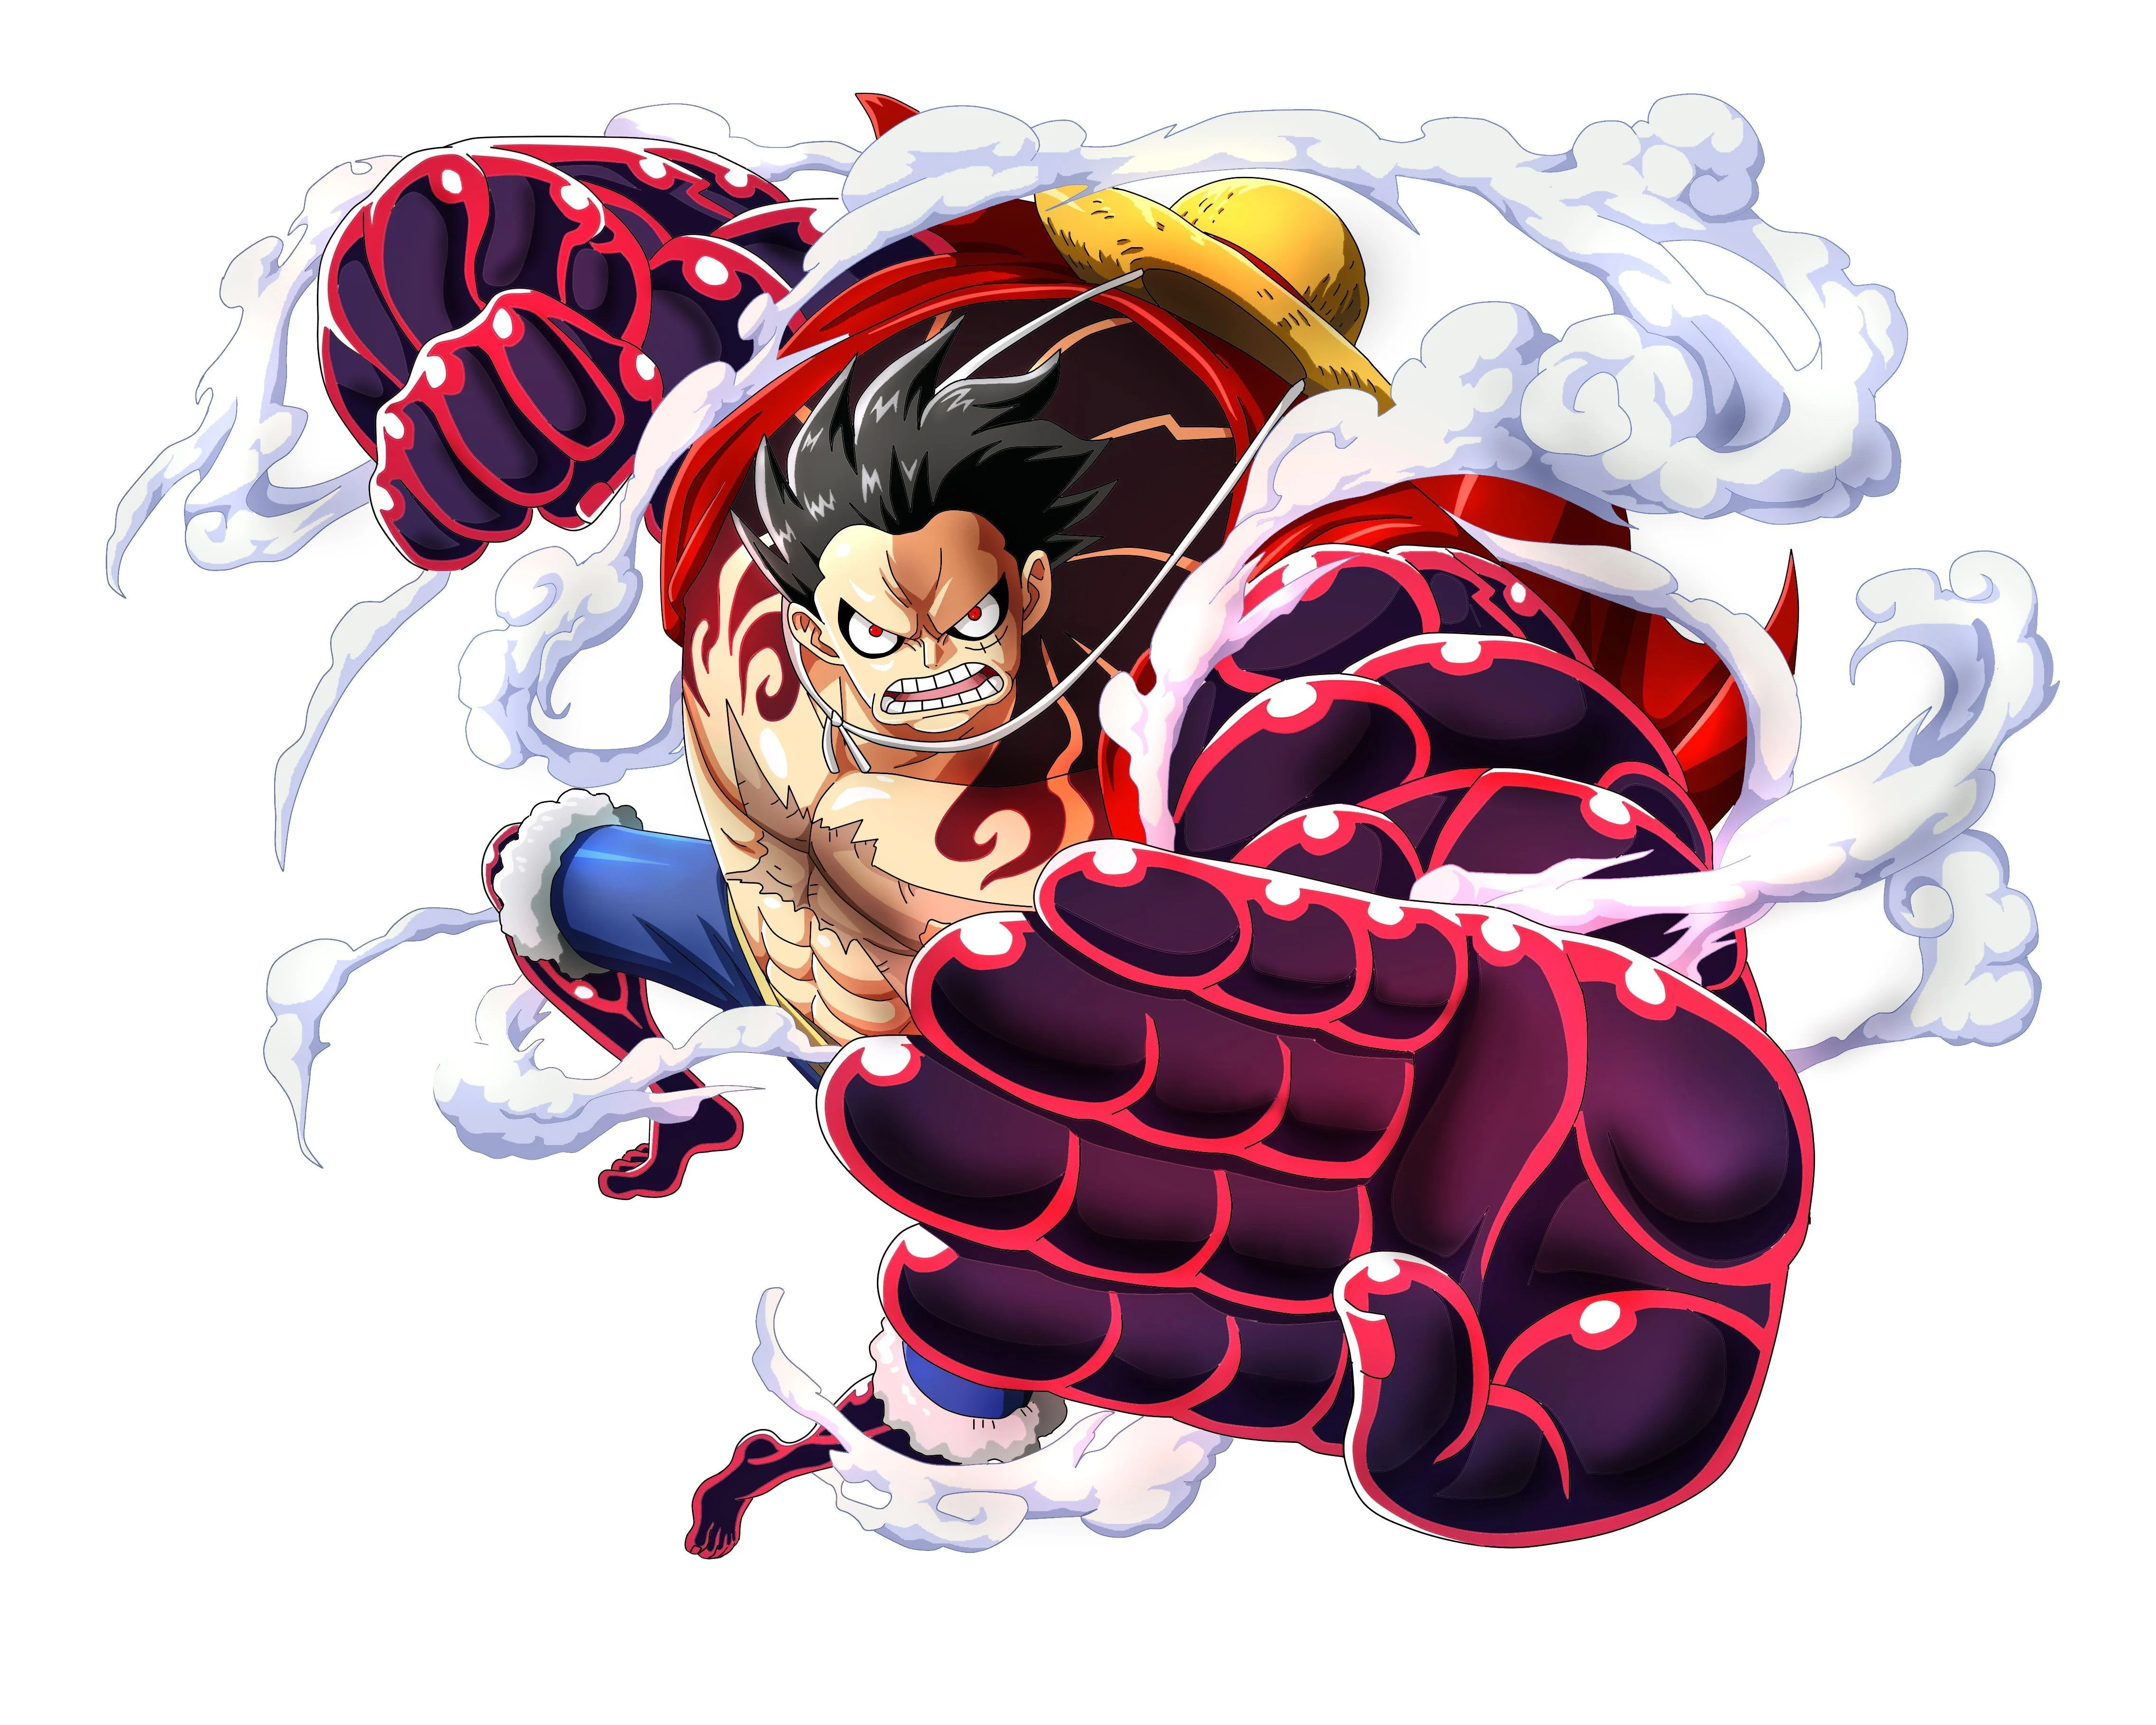 Luffy wallpapers and background images. Luffy Gear 4 Wallpapers Top Free Luffy Gear 4 Backgrounds Wallpaperaccess